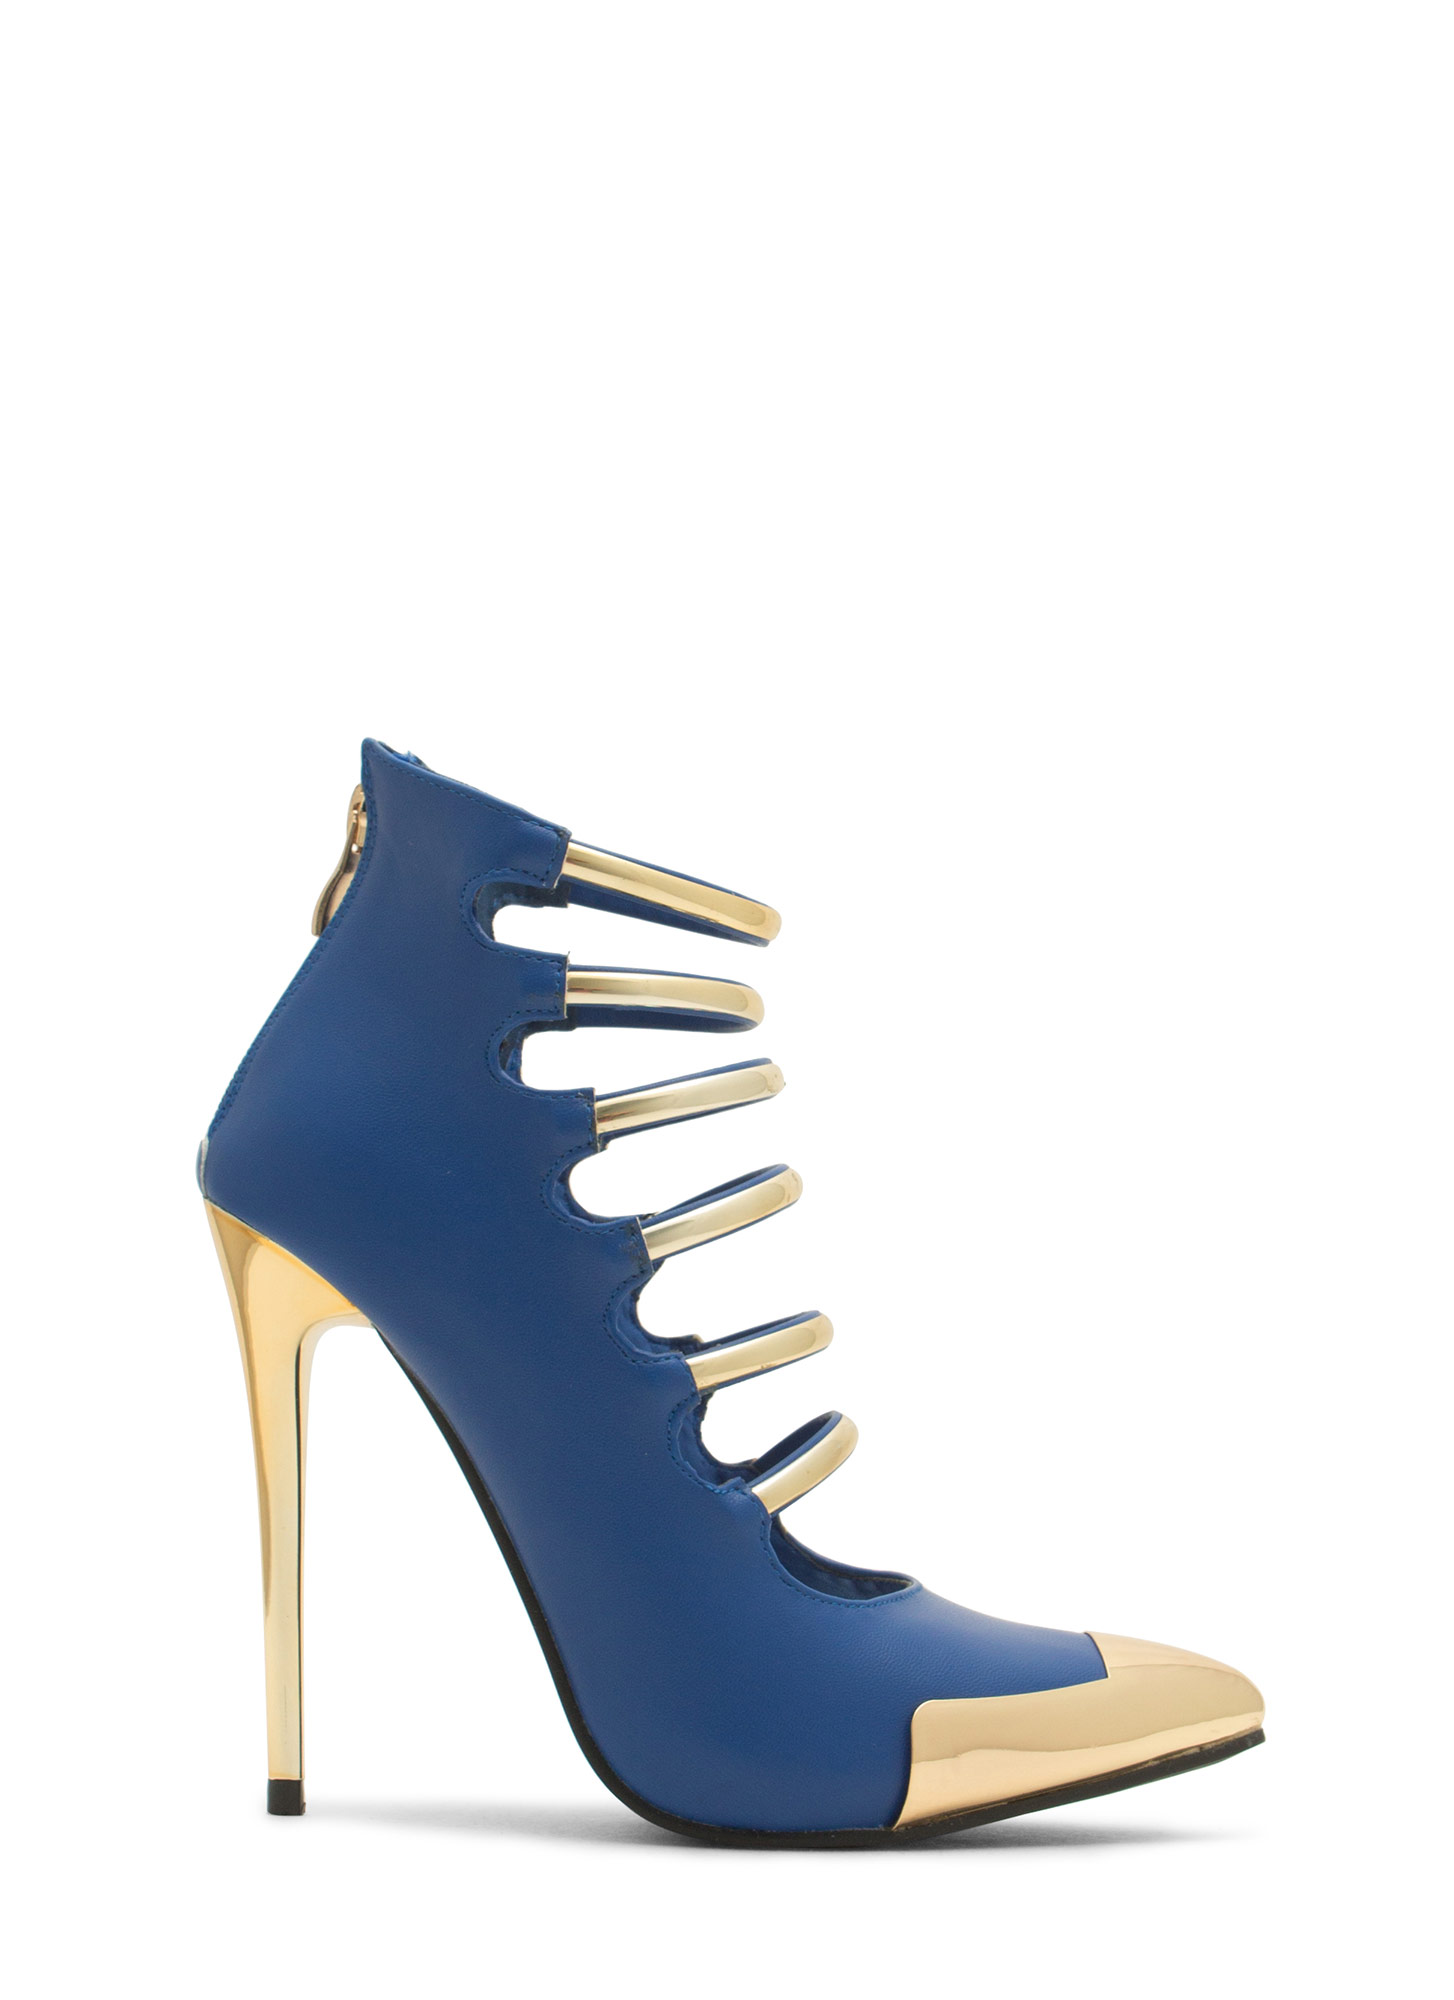 Laddered Gleam Capped Heels ROYAL (Final Sale)